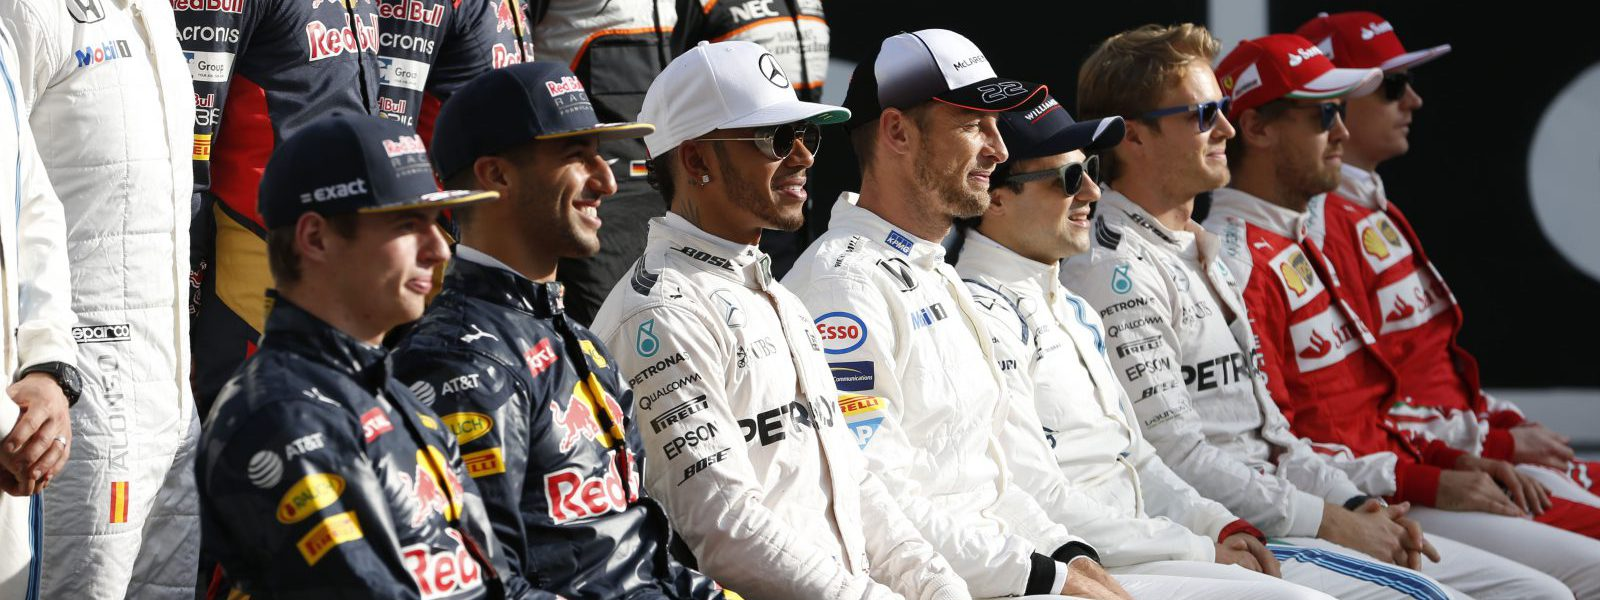 Motorsports: FIA Formula One World Championship 2016, Grand Prix of Abu Dhabi,  F1 drivers groupe picture *** Local Caption *** +++ www.hoch-zwei.net +++ copyright: HOCH ZWEI +++